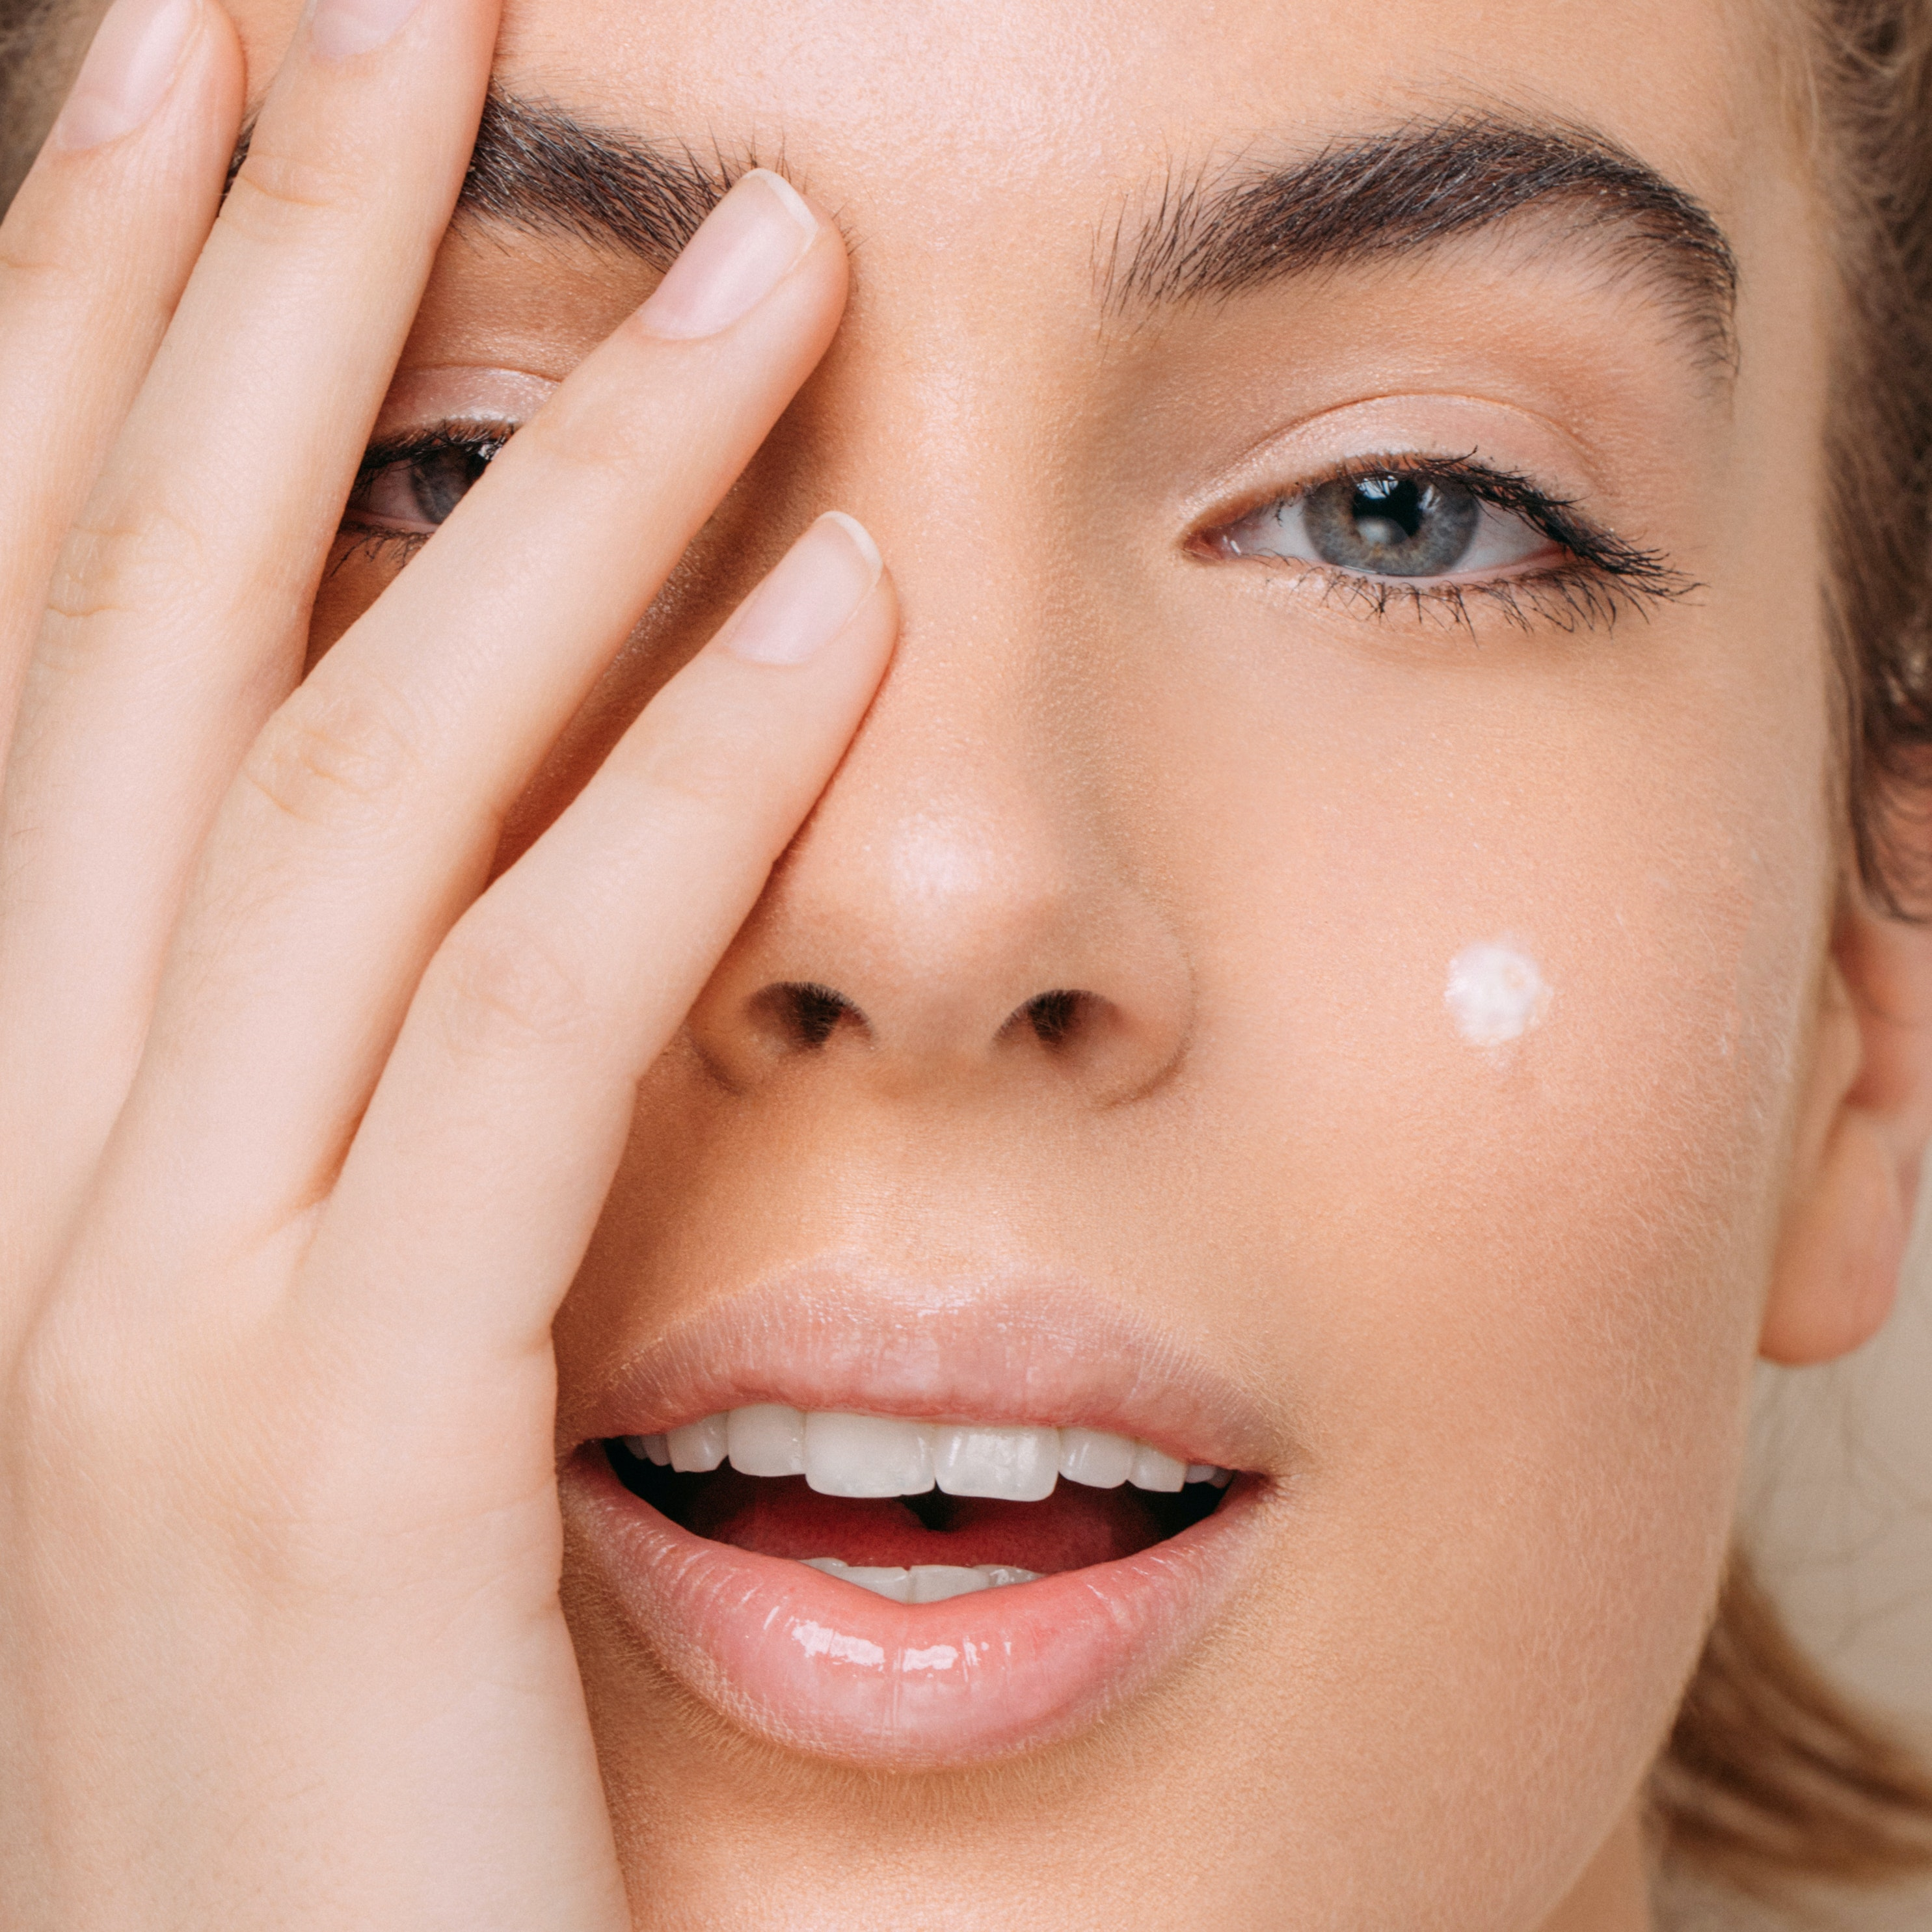 These Are the 6 Best Ways to Get Rid of Acne Scars, According to Dermatologists